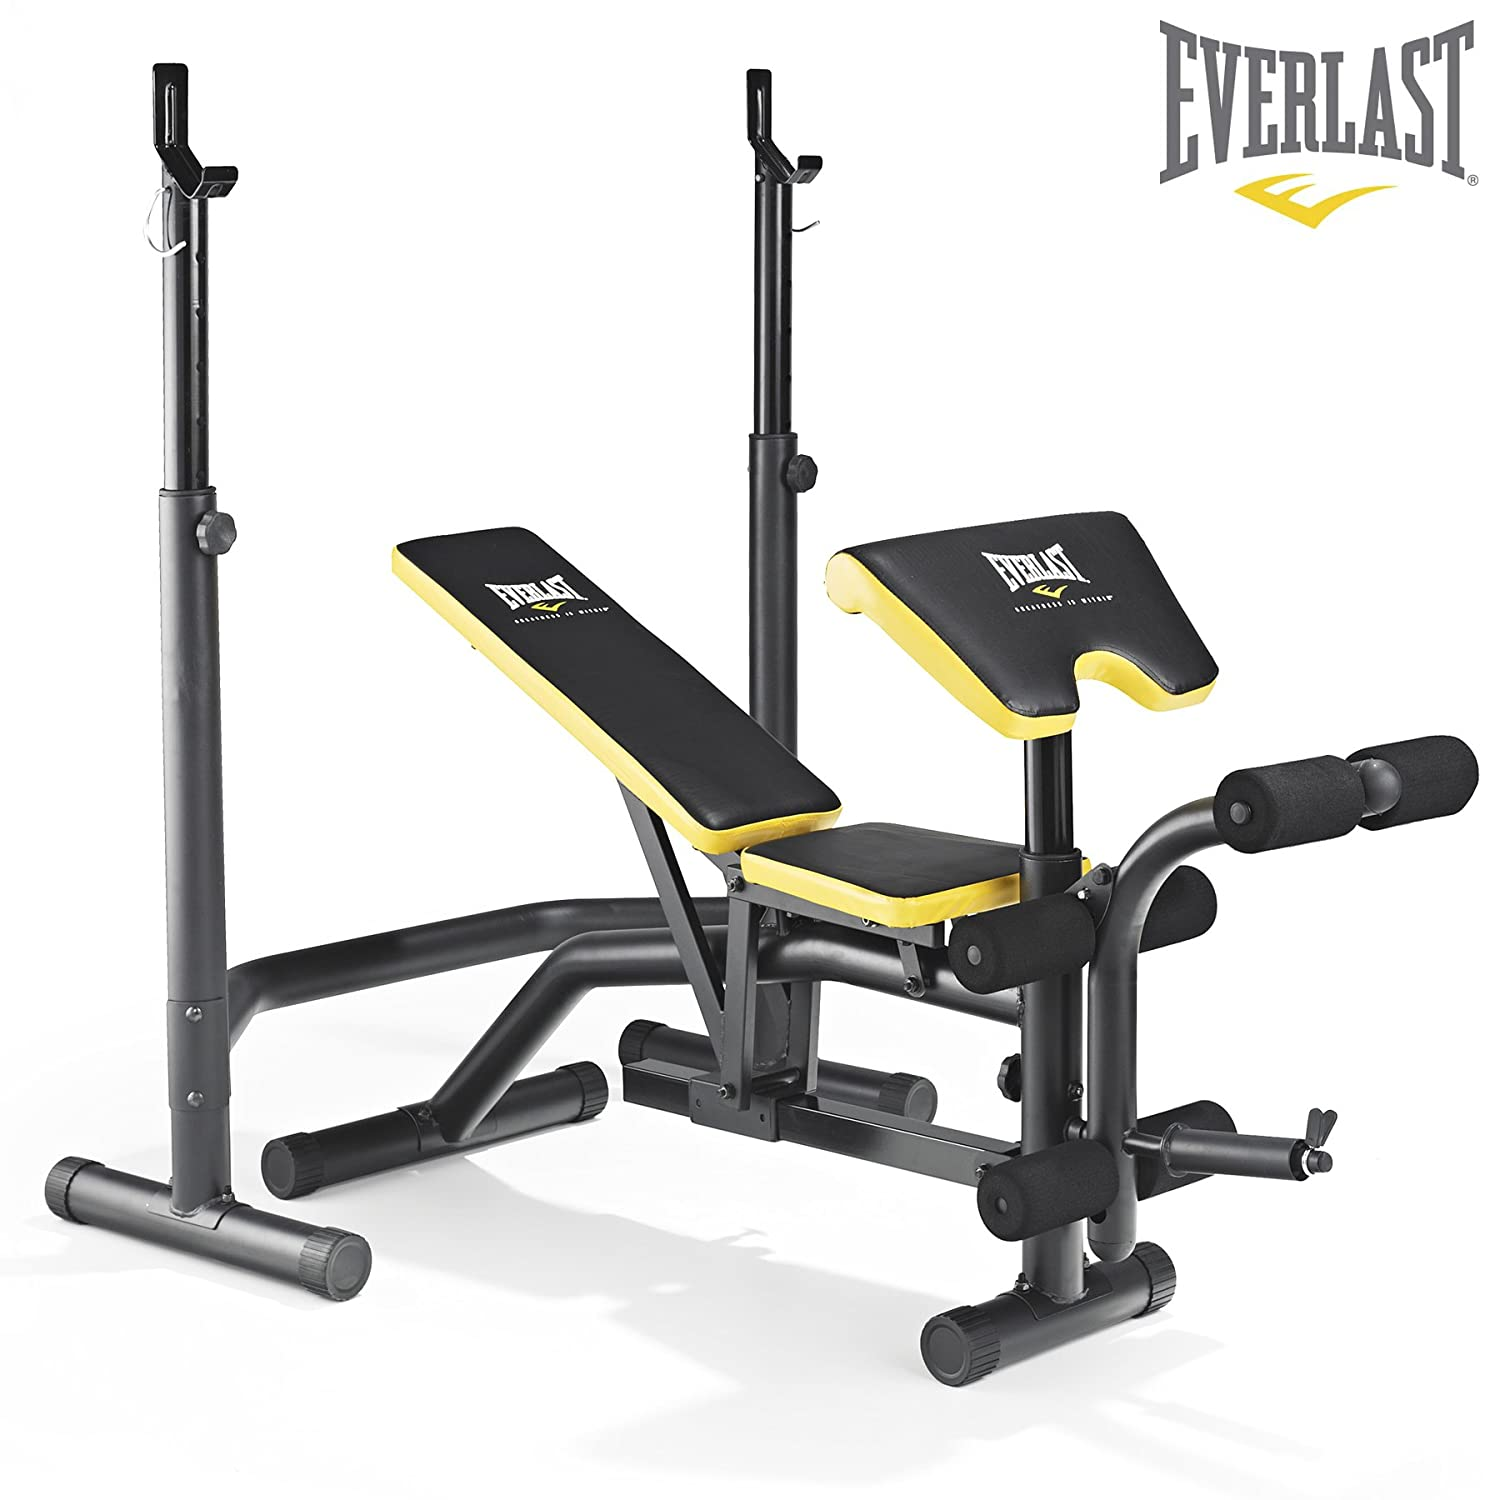 Everlast EV-340 Weight Bench & Squat Rack - Preacher Pad & Leg Developer  Included: Amazon.co.uk: Sports & Outdoors